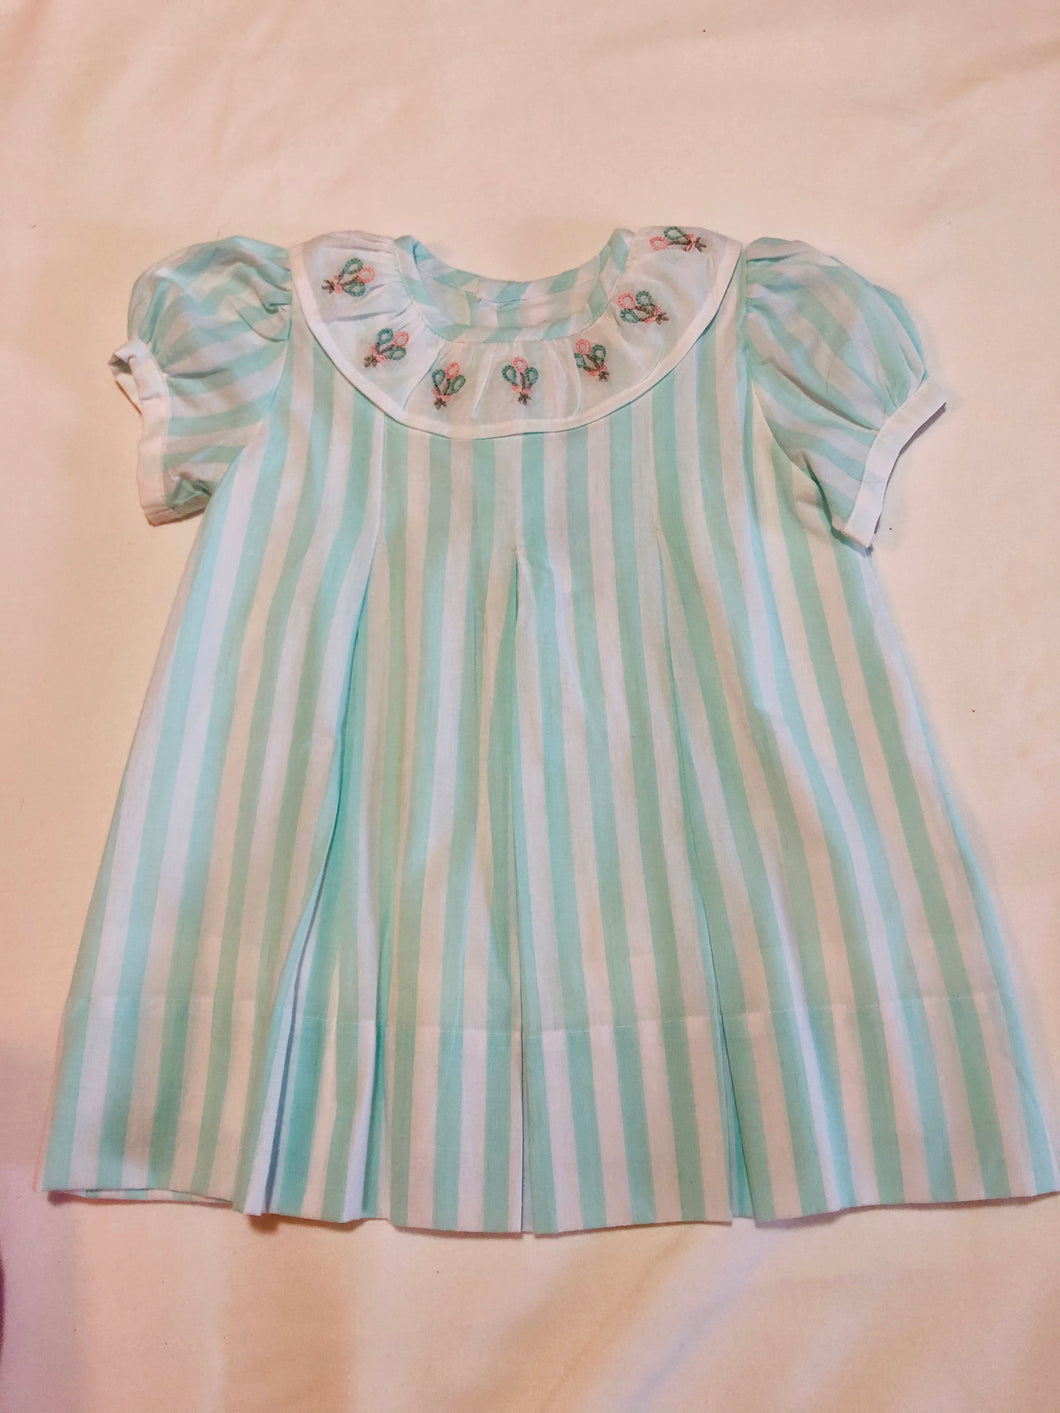 Commander's Dress - Posh Tots Children's Boutique